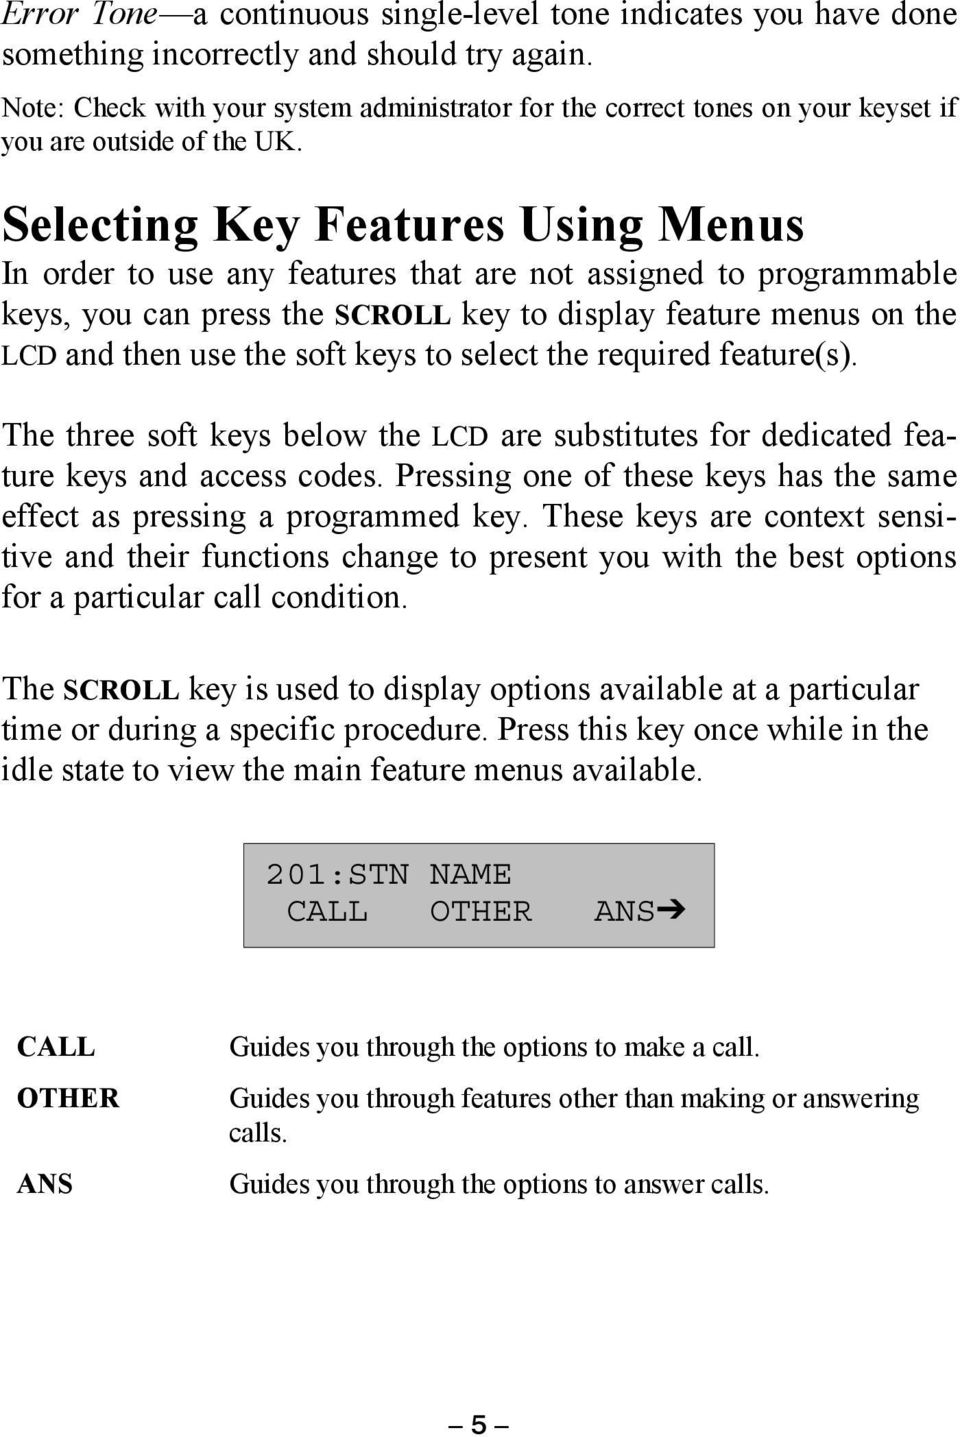 Selecting Key Features Using Menus In order to use any features that are not assigned to programmable keys, you can press the SCROLL key to display feature menus on the LCD and then use the soft keys